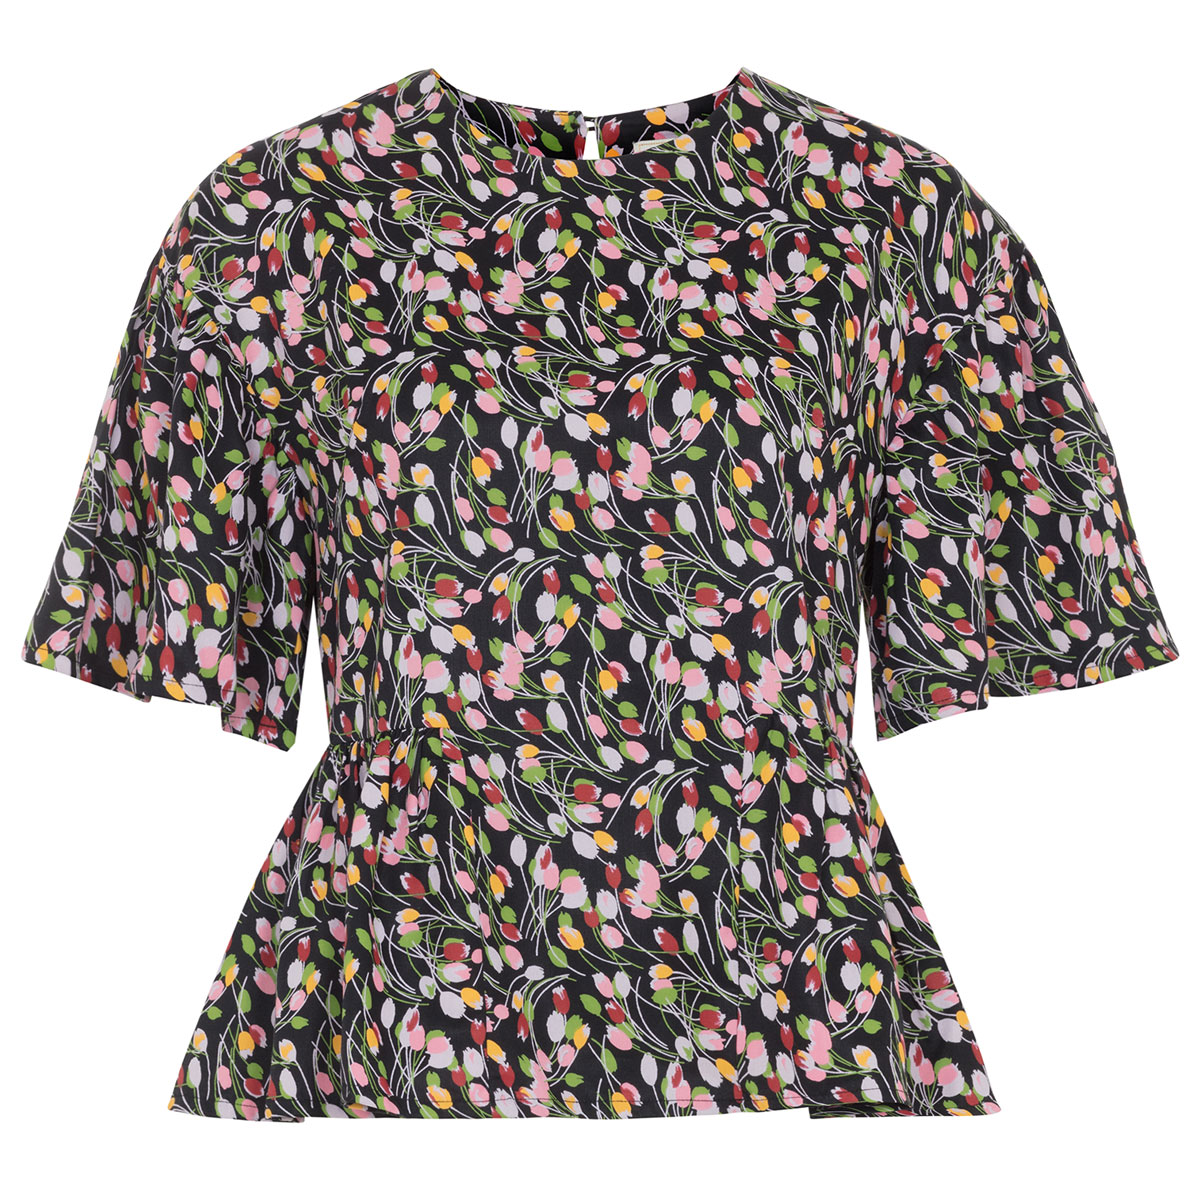 V&A Tulip Print top by People Tree